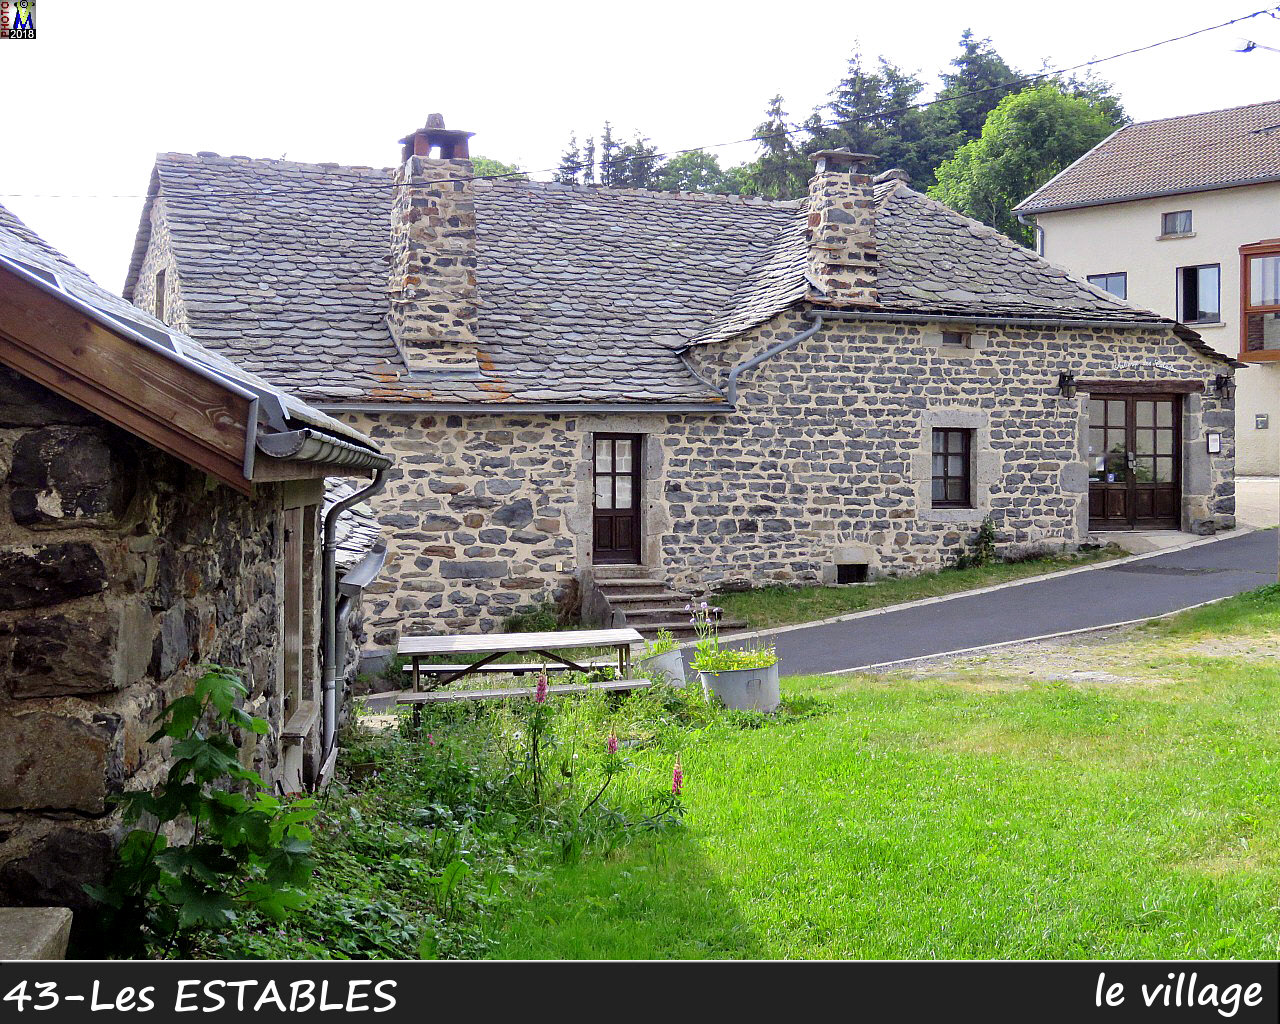 43LesESTABLES_village_102.jpg